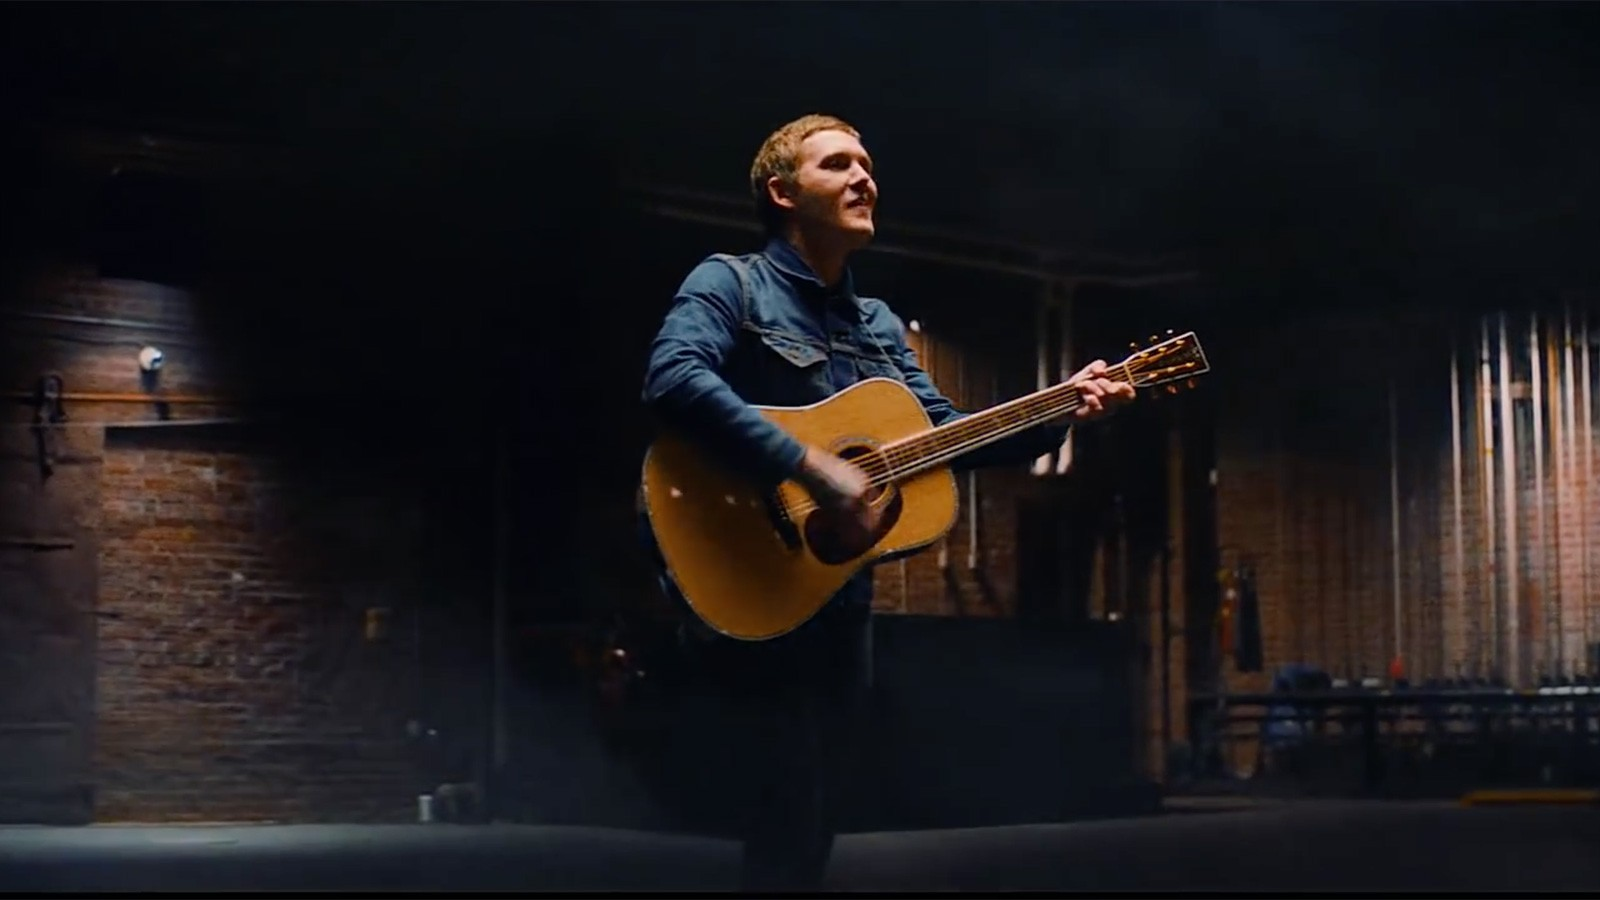 Brian Fallon - Wonderful Life Video Snap